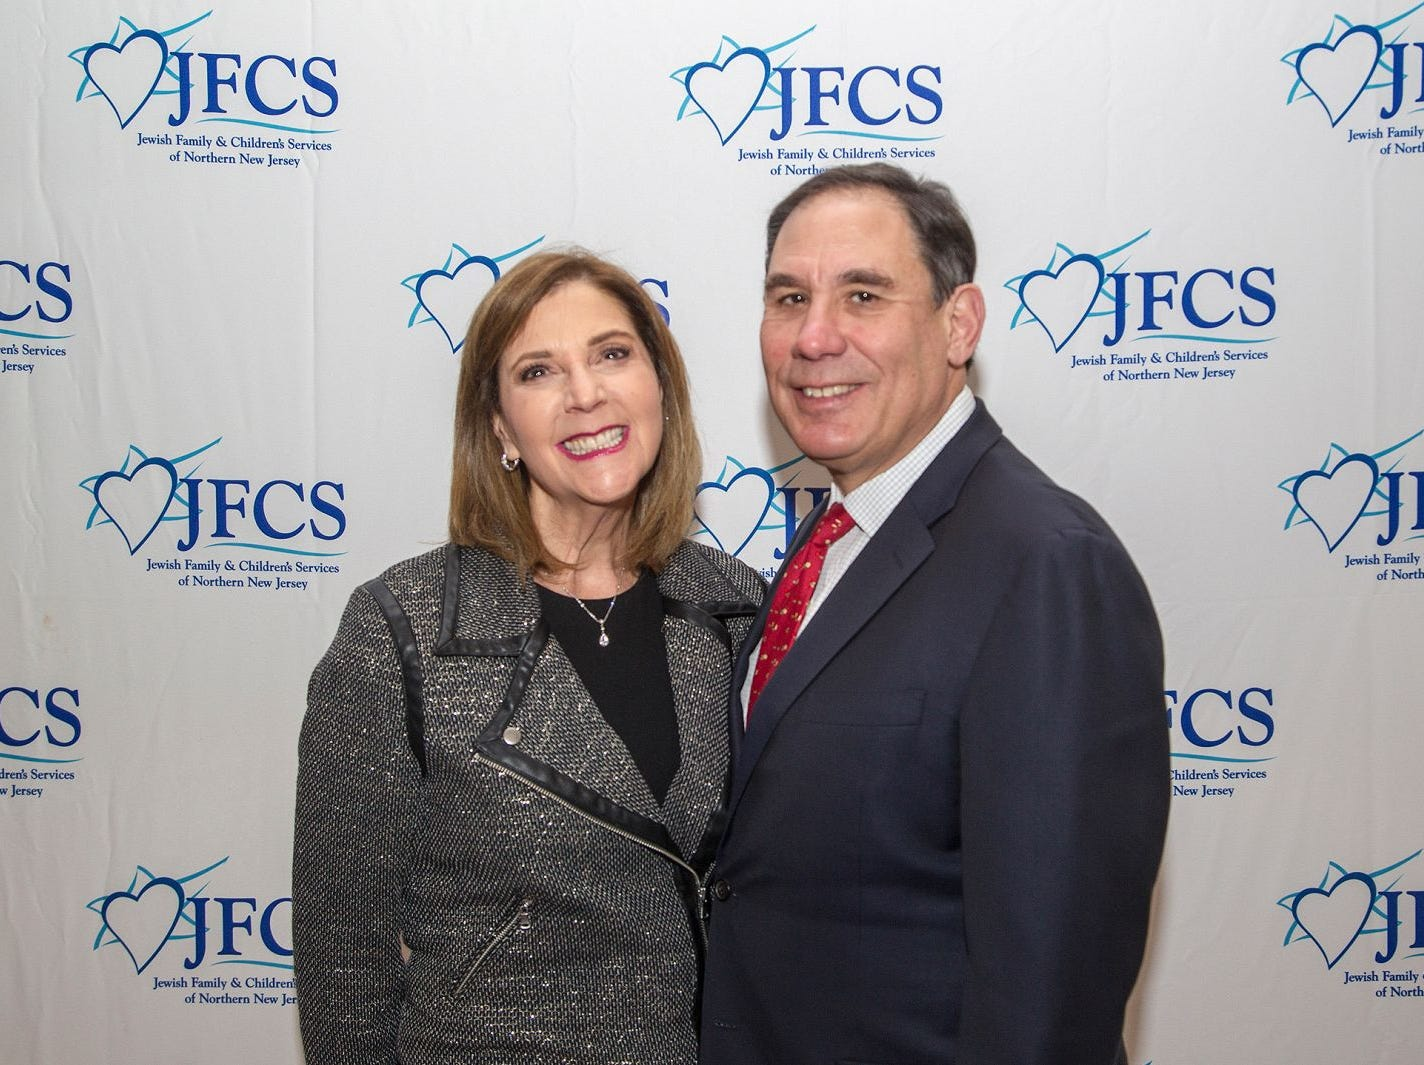 Paula and Lee Shaiman. Jewish Family & Children's Services of Northern New Jersey held its annual gala at the Edgewood Country Club in River Vale. The evening honored Shira Feuerstein, Jayne Petak, and Alan Scharfstein for their leadership, support, and dedication. 11/18/2018